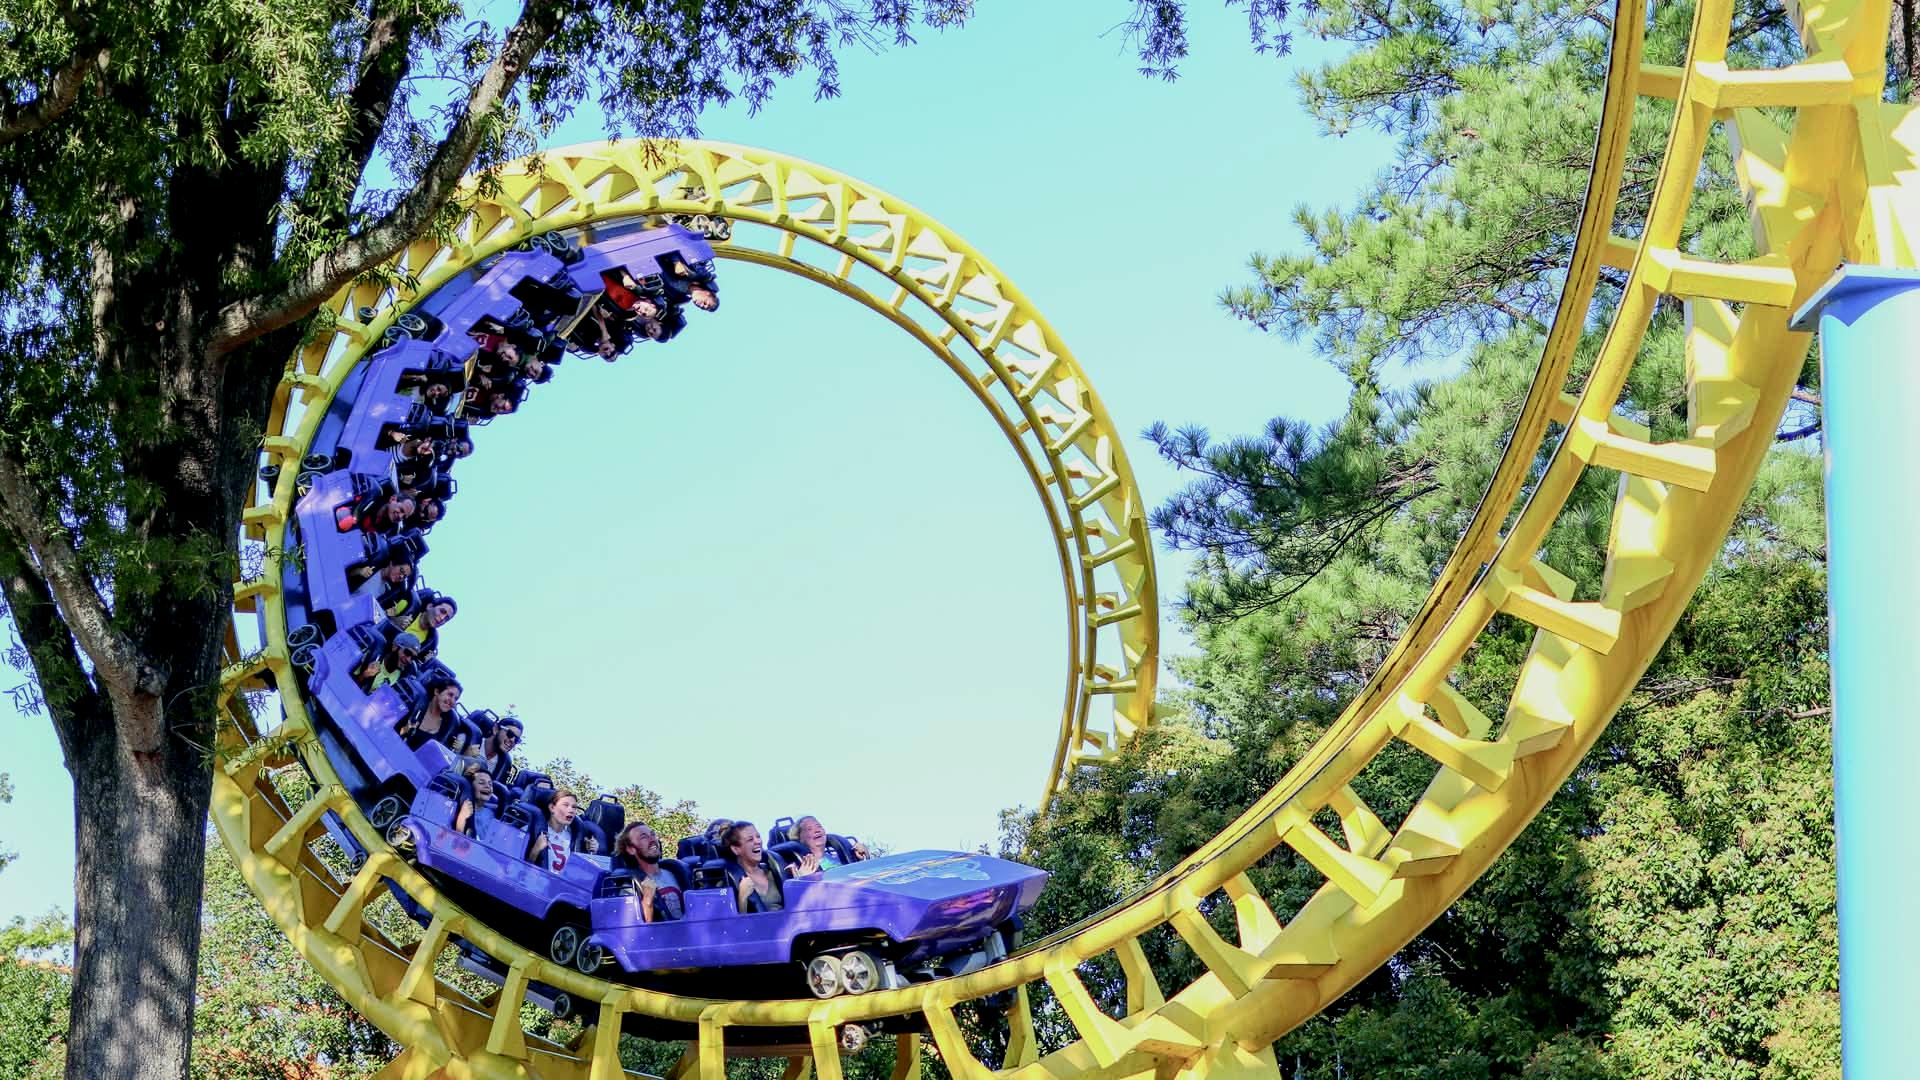 Carowinds' Classic Roller Coaster Carolina Cyclone Takes Families Upside Down